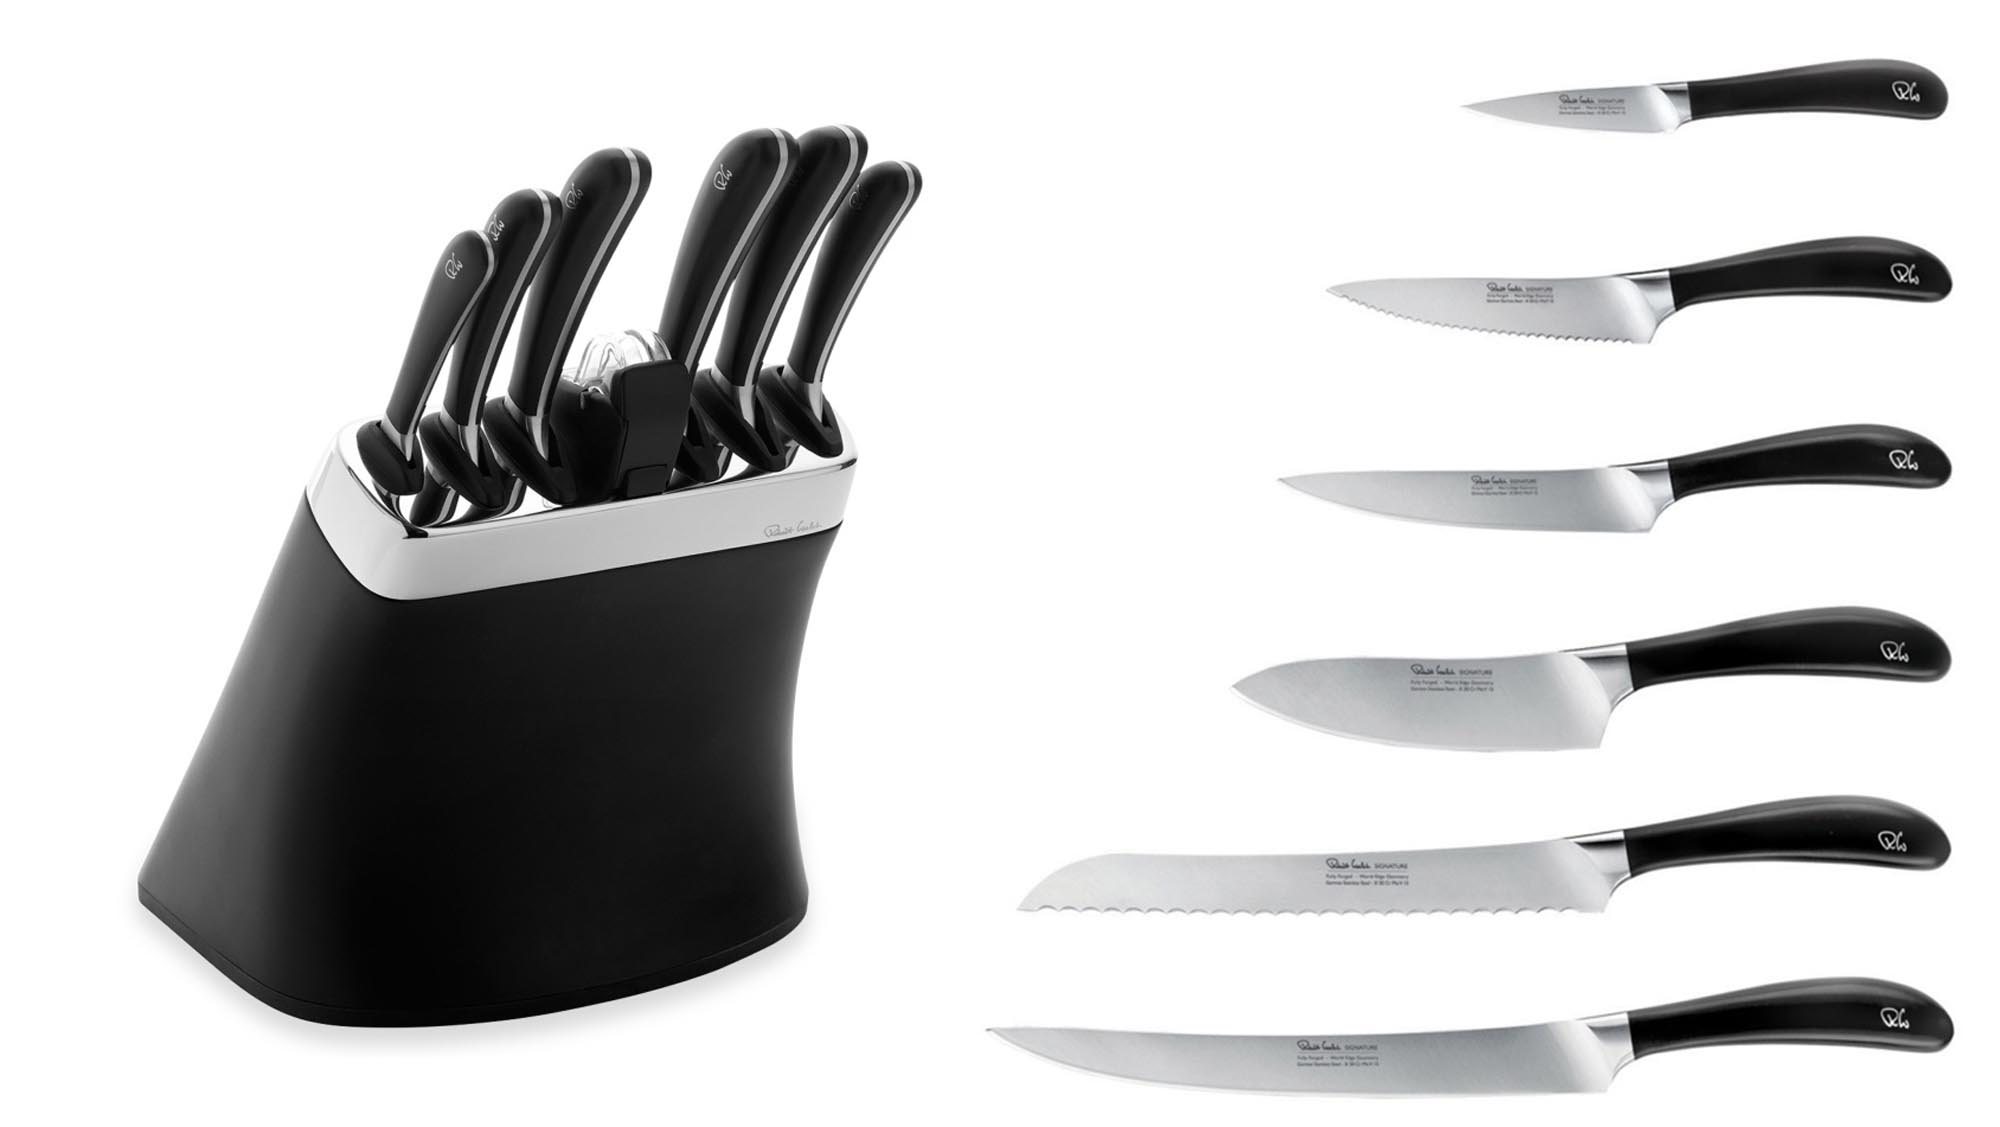 While Not Exactly Cheap, You Actually Get A Lot More Bang For Your Buck  With These Six Award Winning, Design Led And Dishwasher Safe Knives Than  You Do With ...